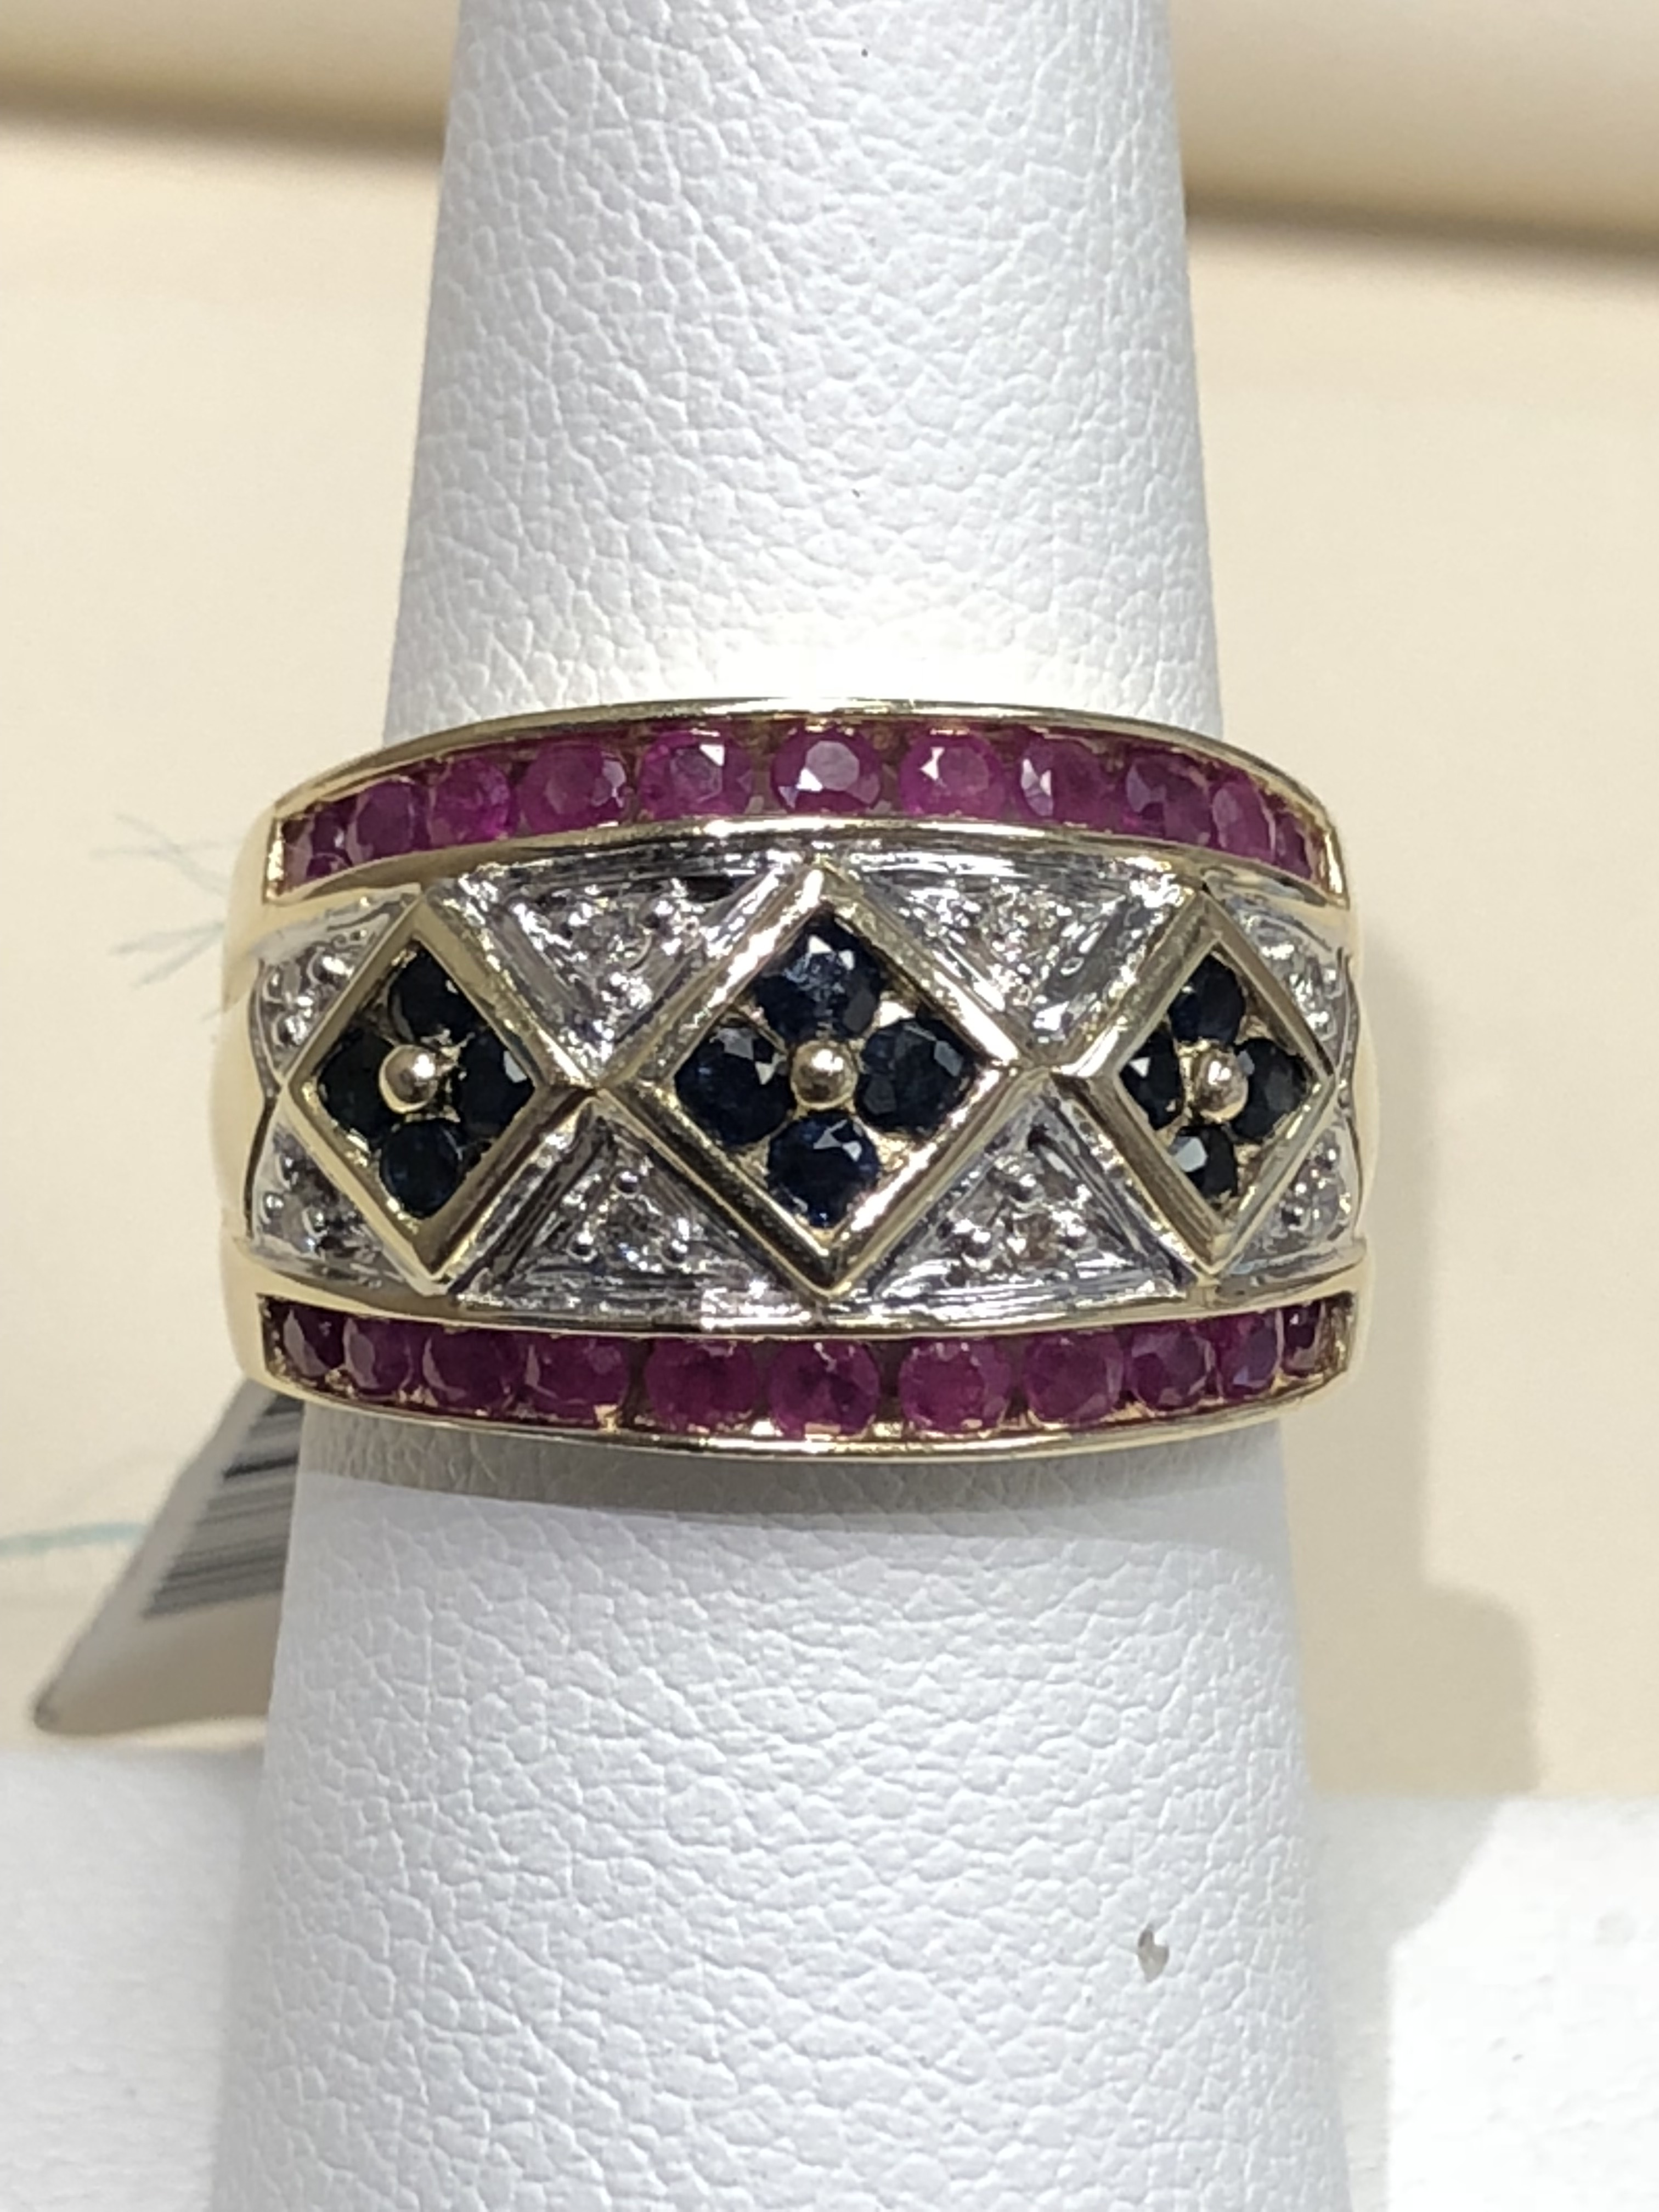 14K Yellow & White Gold 6.9g Band Ring with Diamonds, Sapphires and Rubies